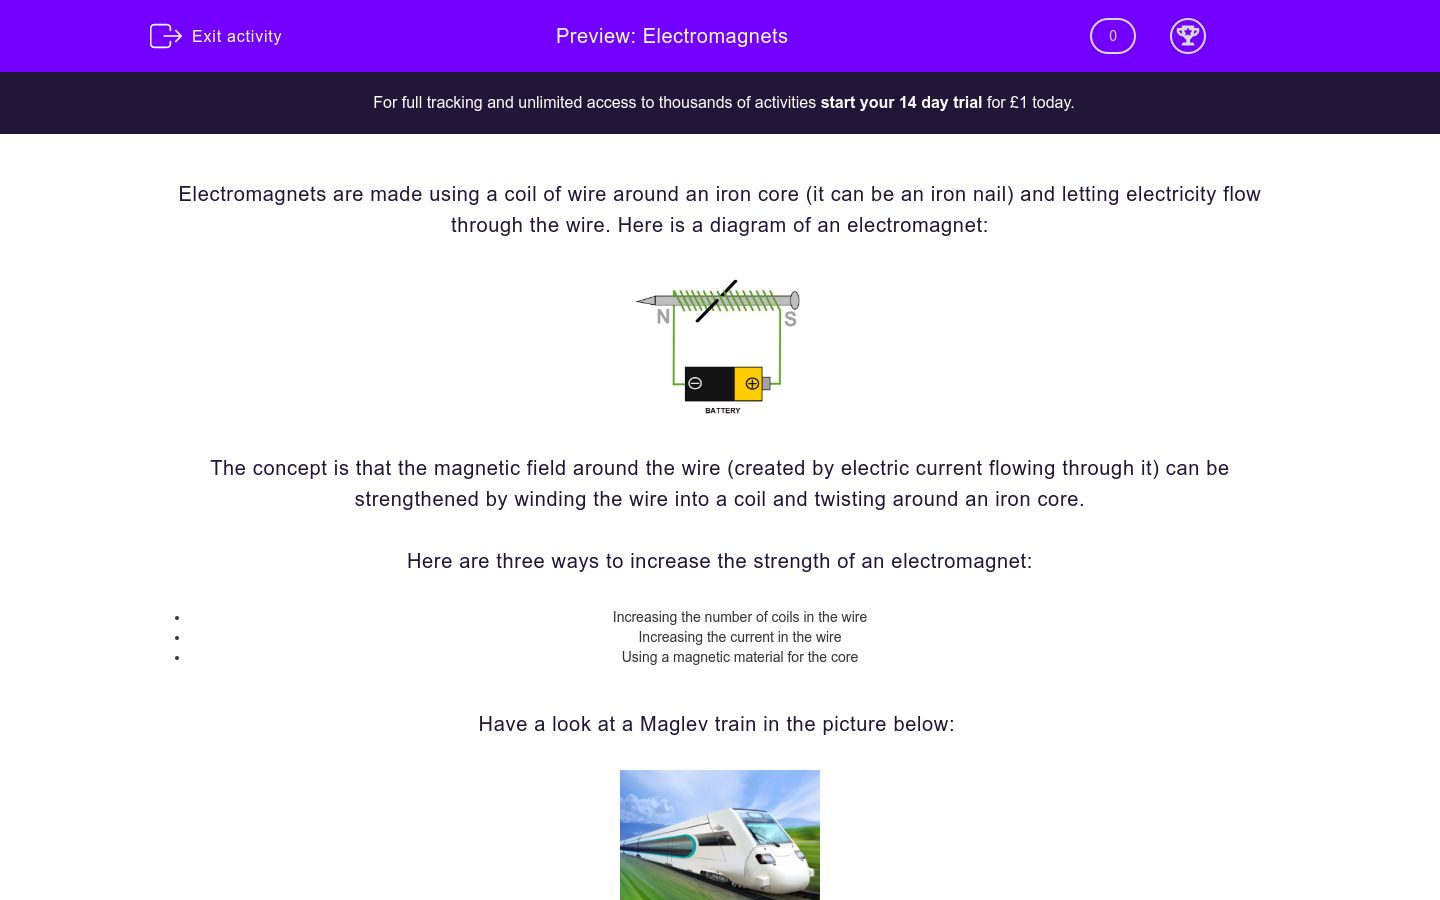 'Electromagnets' worksheet